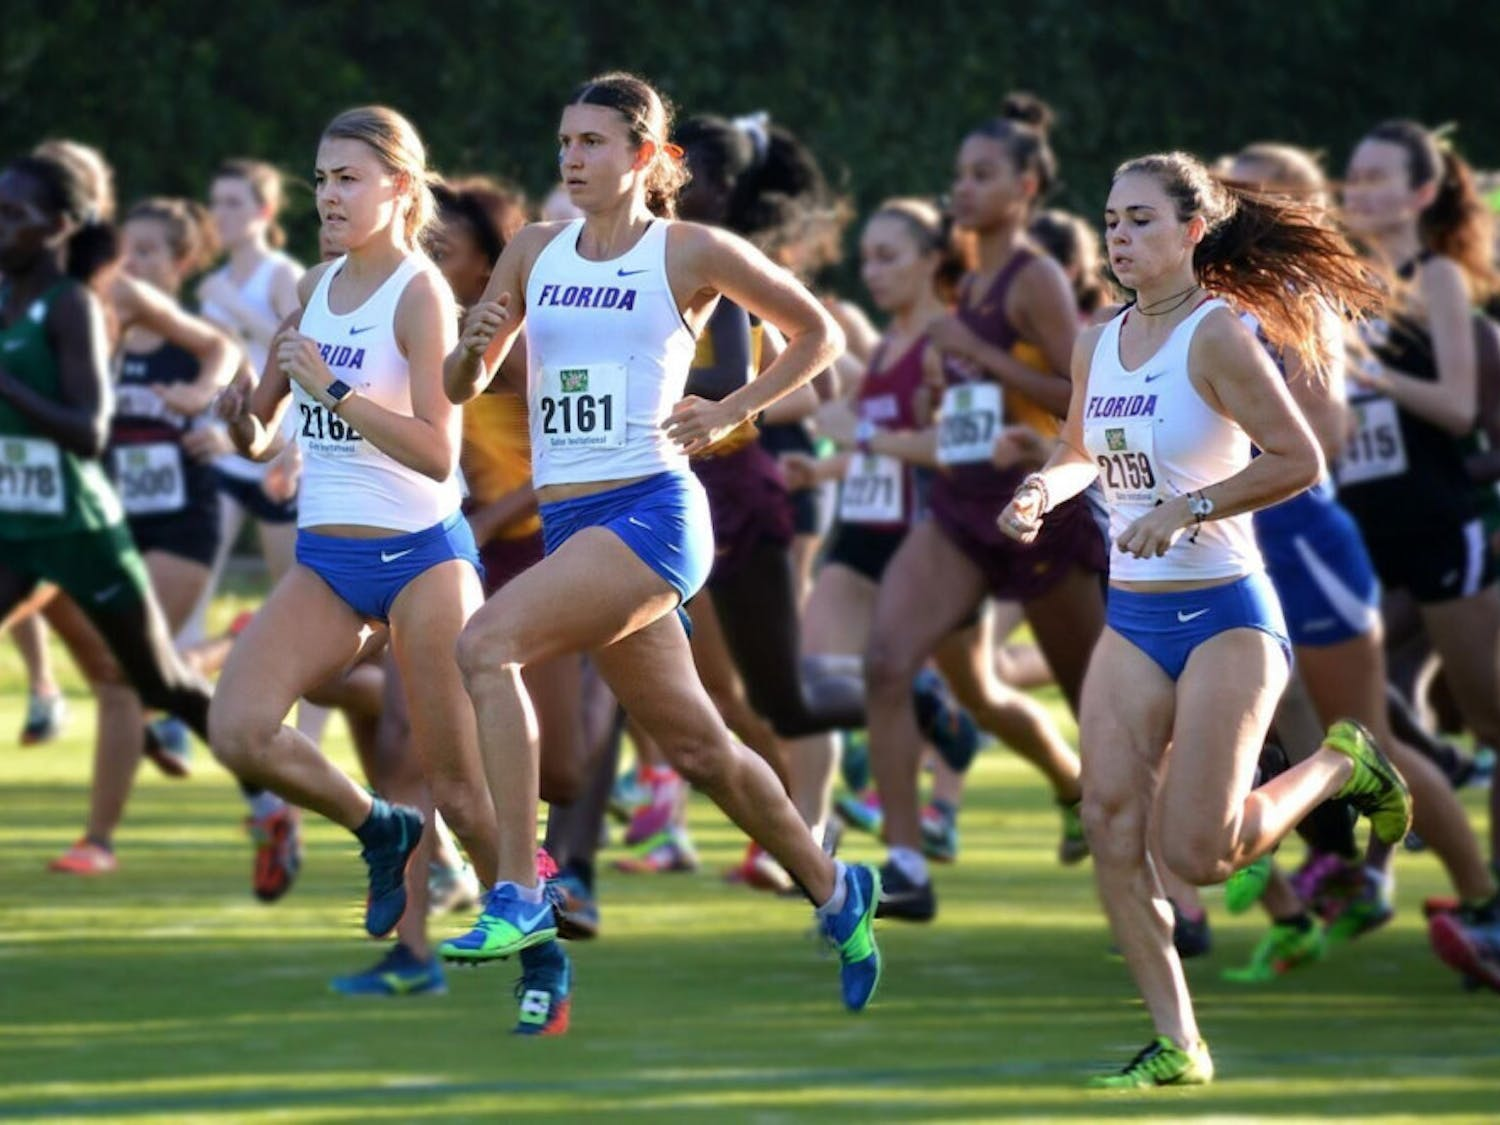 Three members of the Florida women's cross country competing.